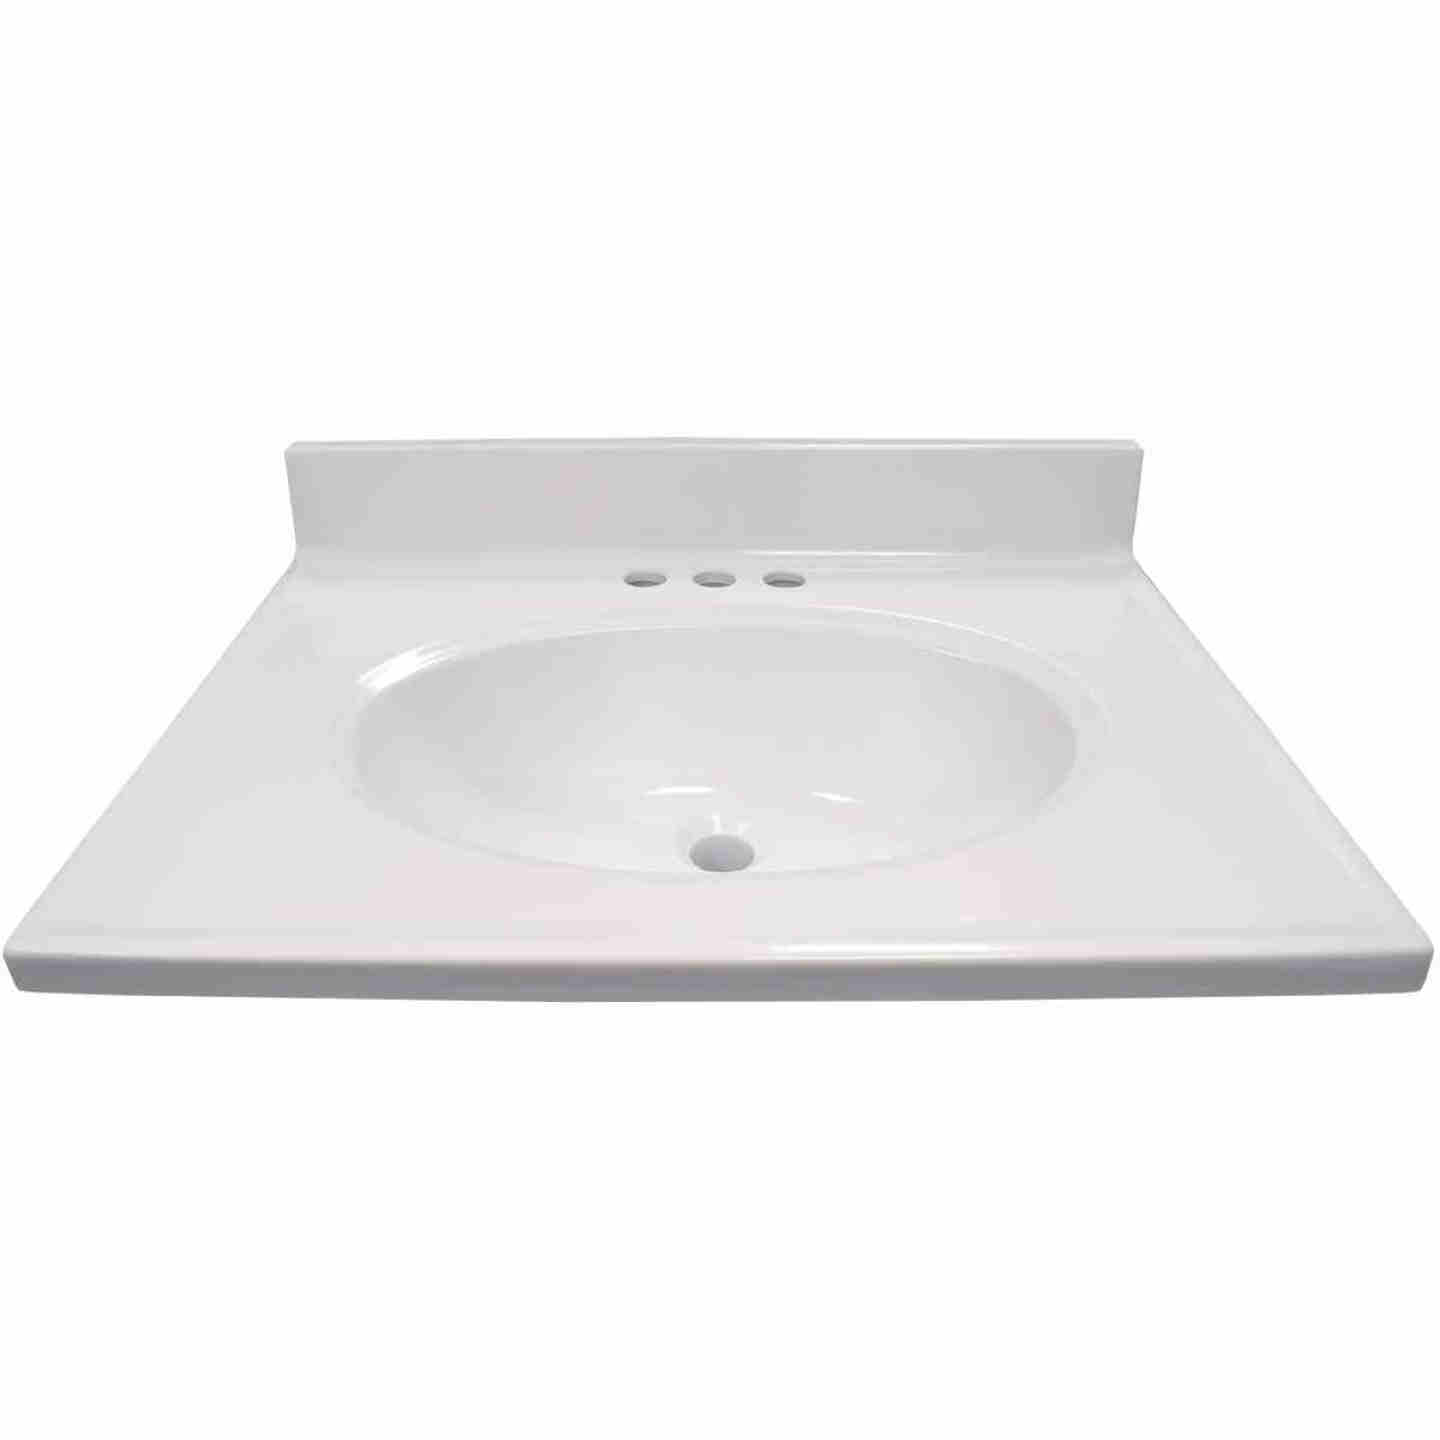 Modular Vanity Tops 25 In. W x 19 In. D Solid White Cultured Marble Non-Drip Edge Vanity Top with Oval Bowl Image 2